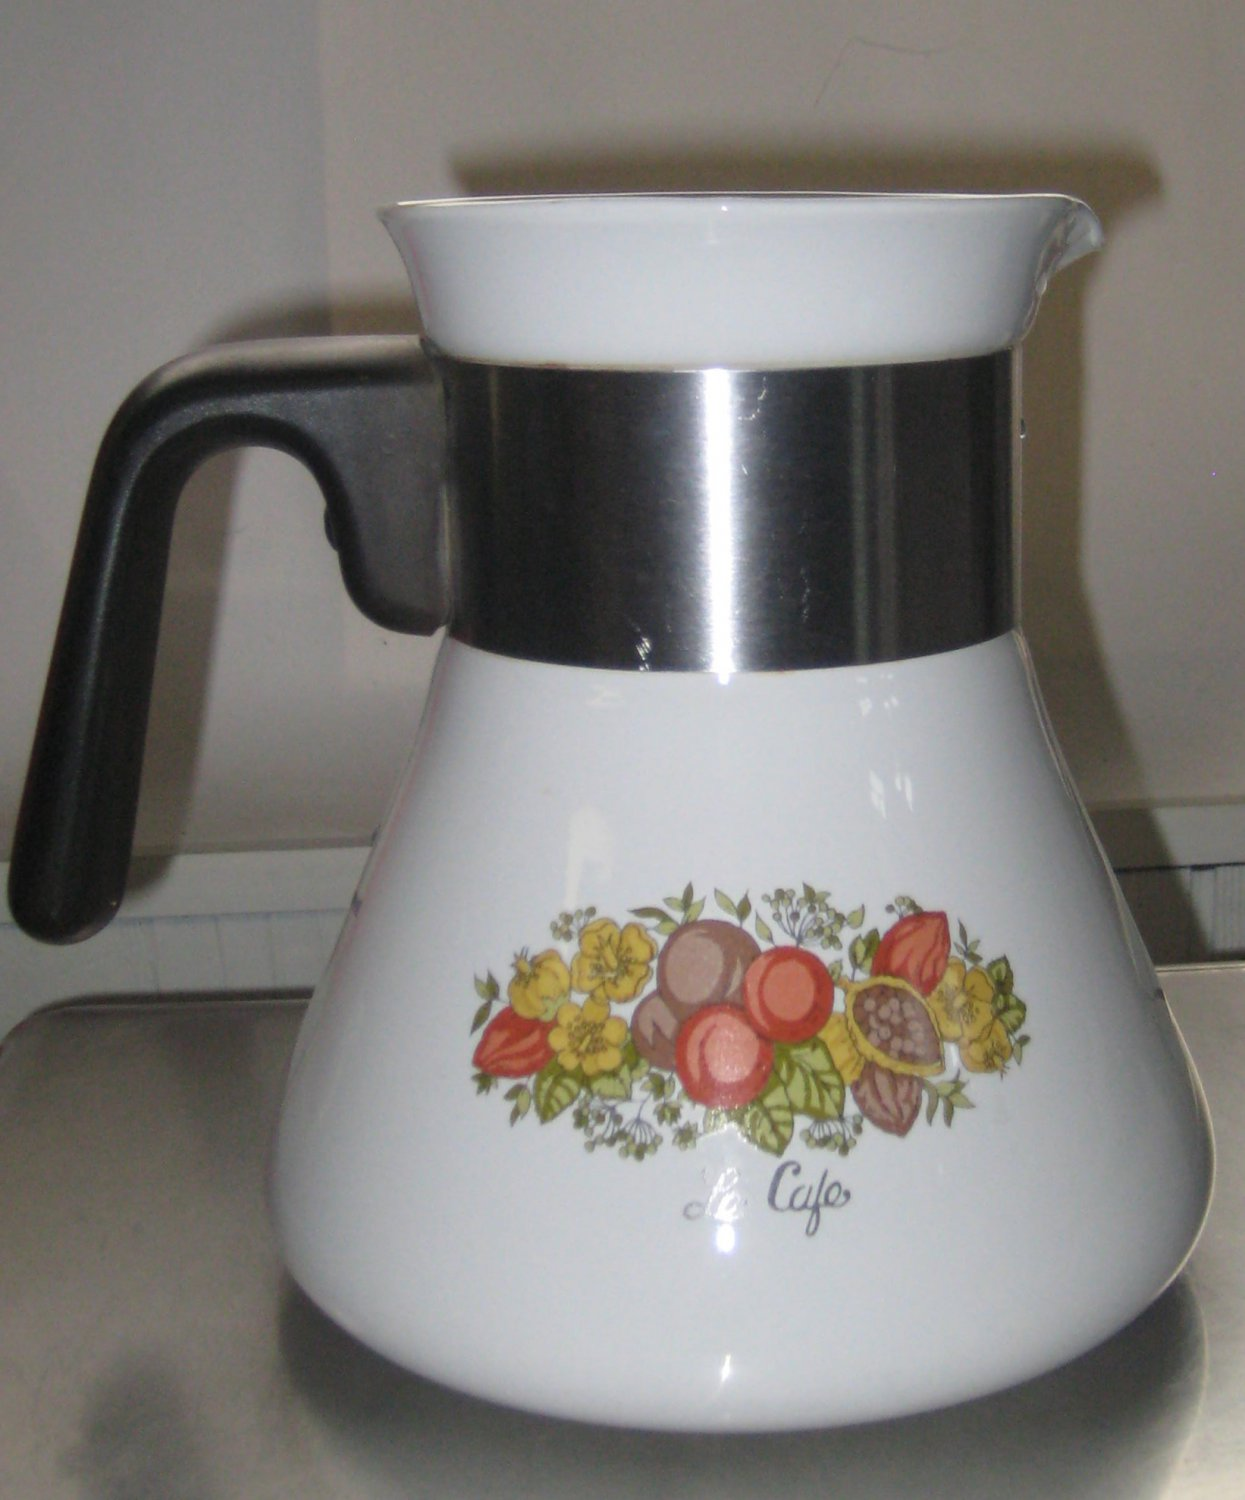 vintage corningware teapot kettle coffee pot le cafe spice of life 6 cup. Black Bedroom Furniture Sets. Home Design Ideas